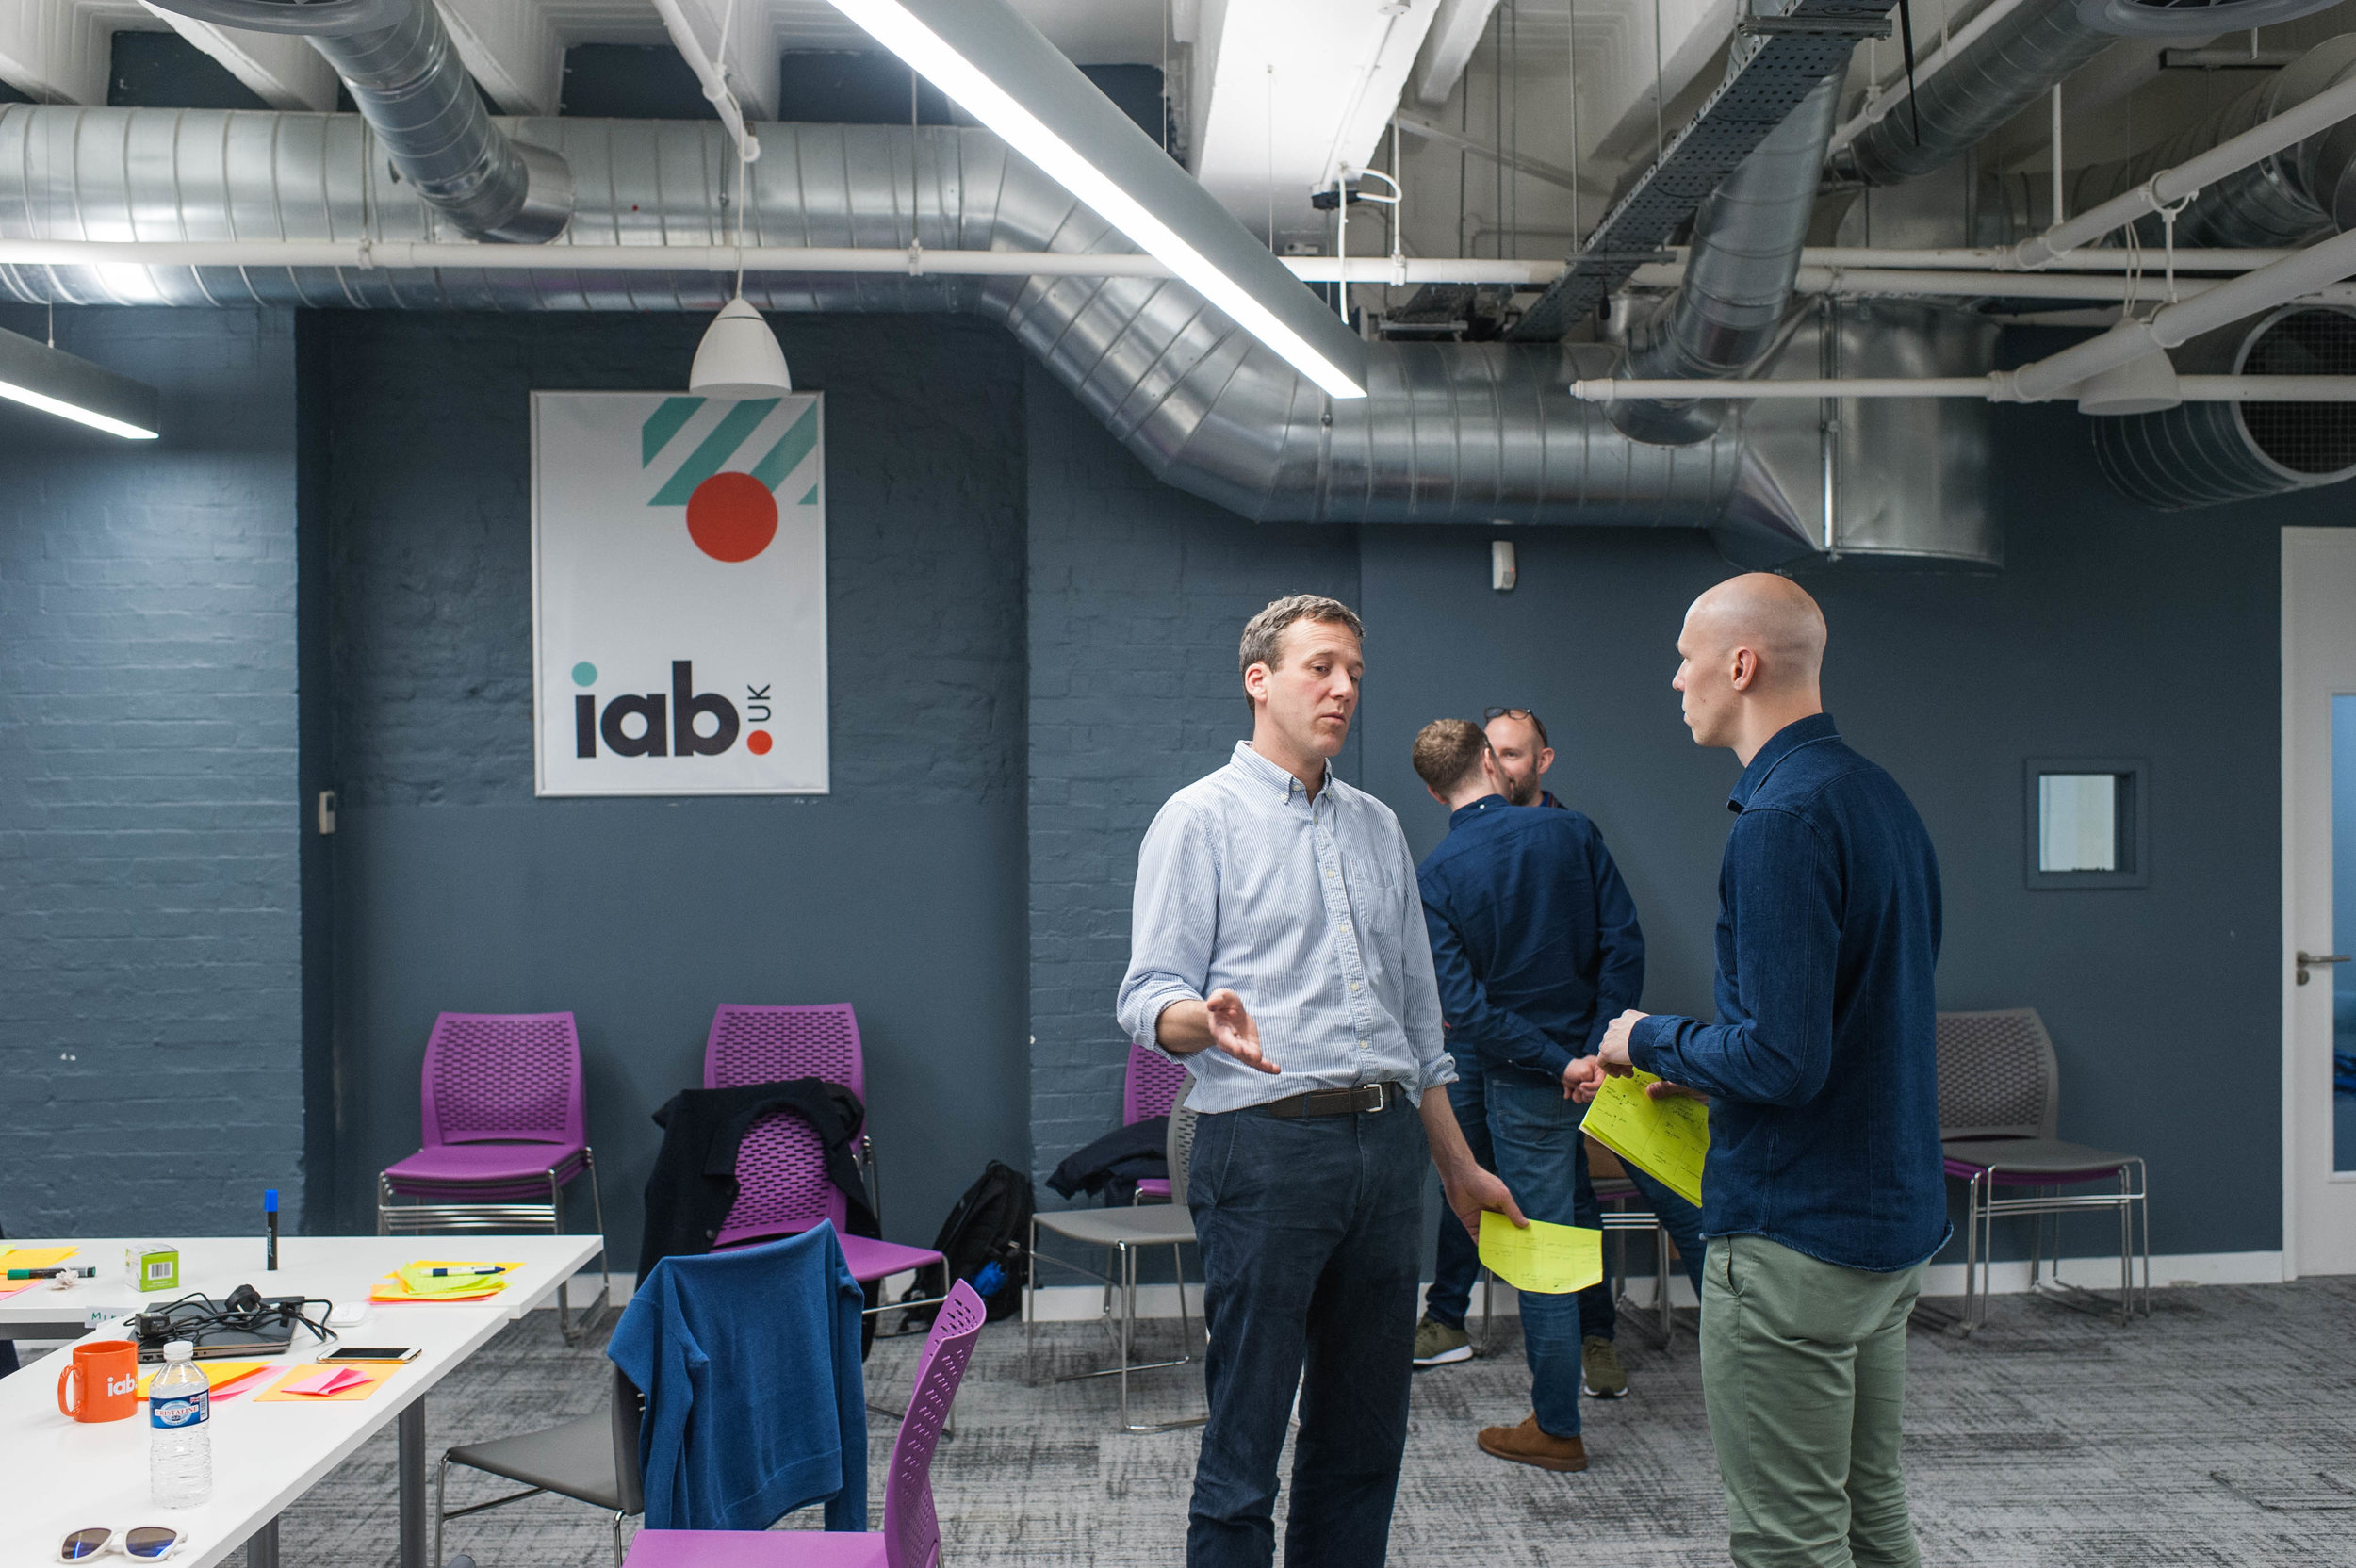 IAB Uk_Incidental Shots_SM (251 of 312).jpg